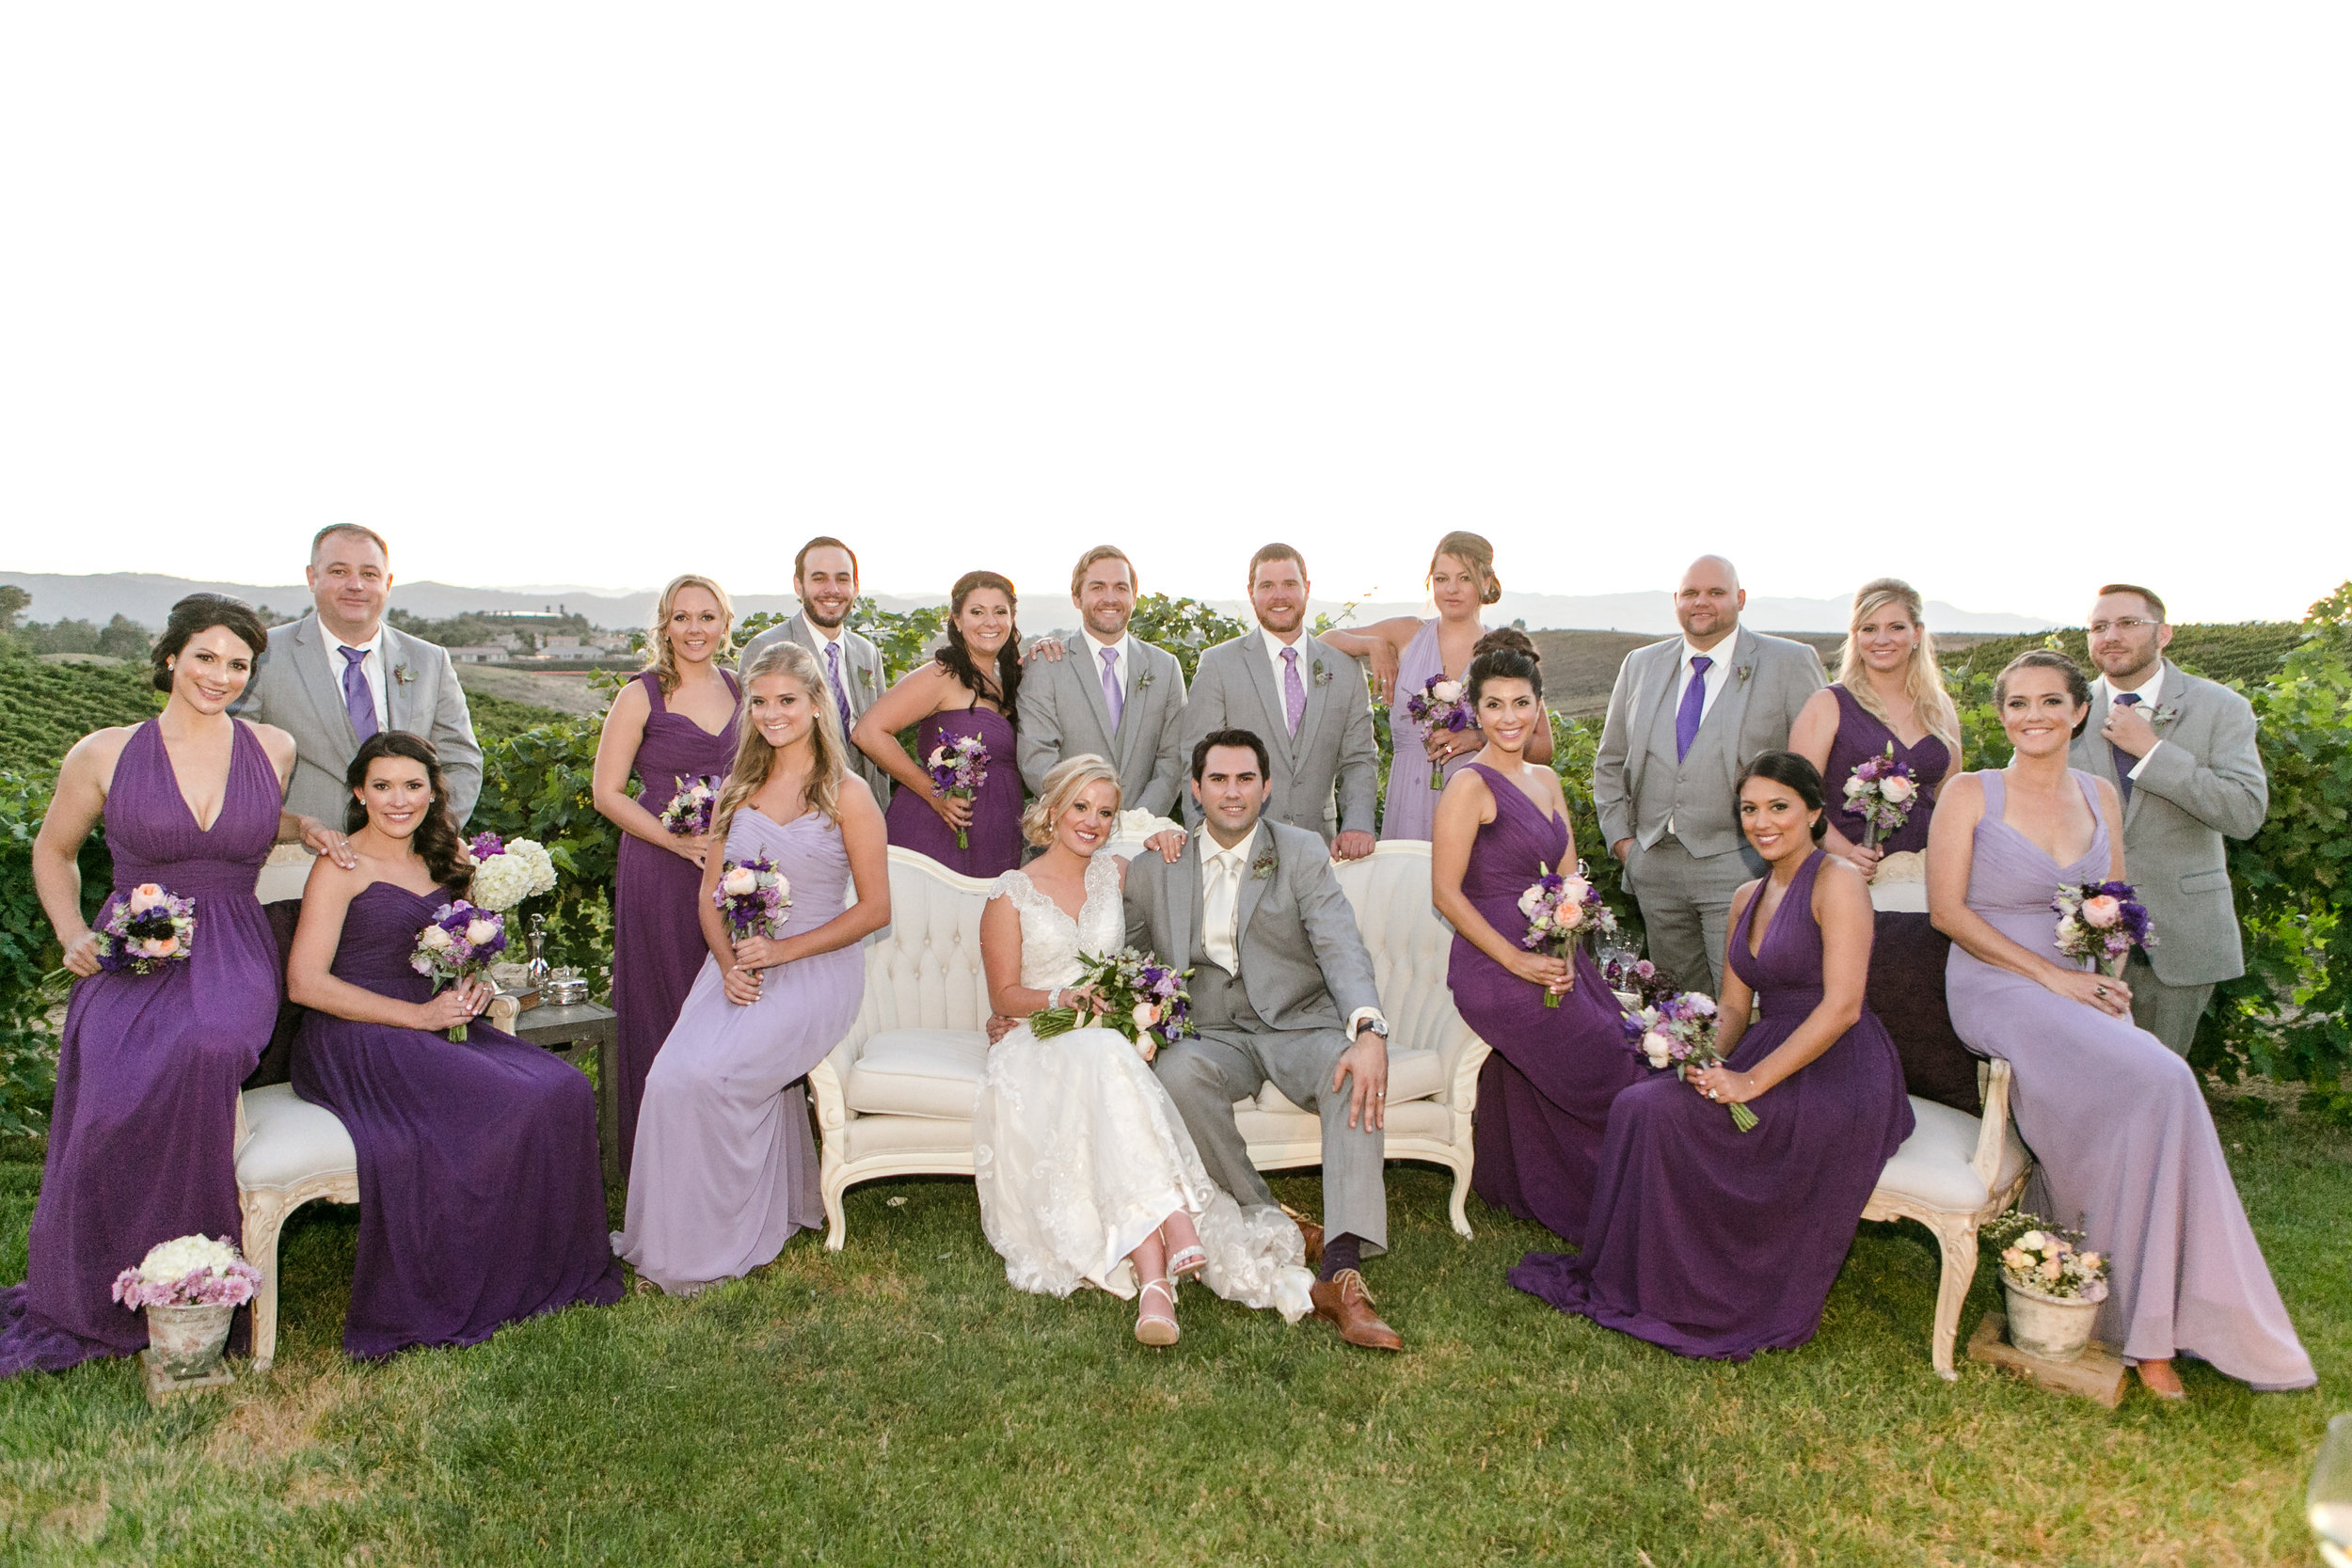 Gray and Purple Bridal Party | Michelle Garibay Events | Leah Marie Photography